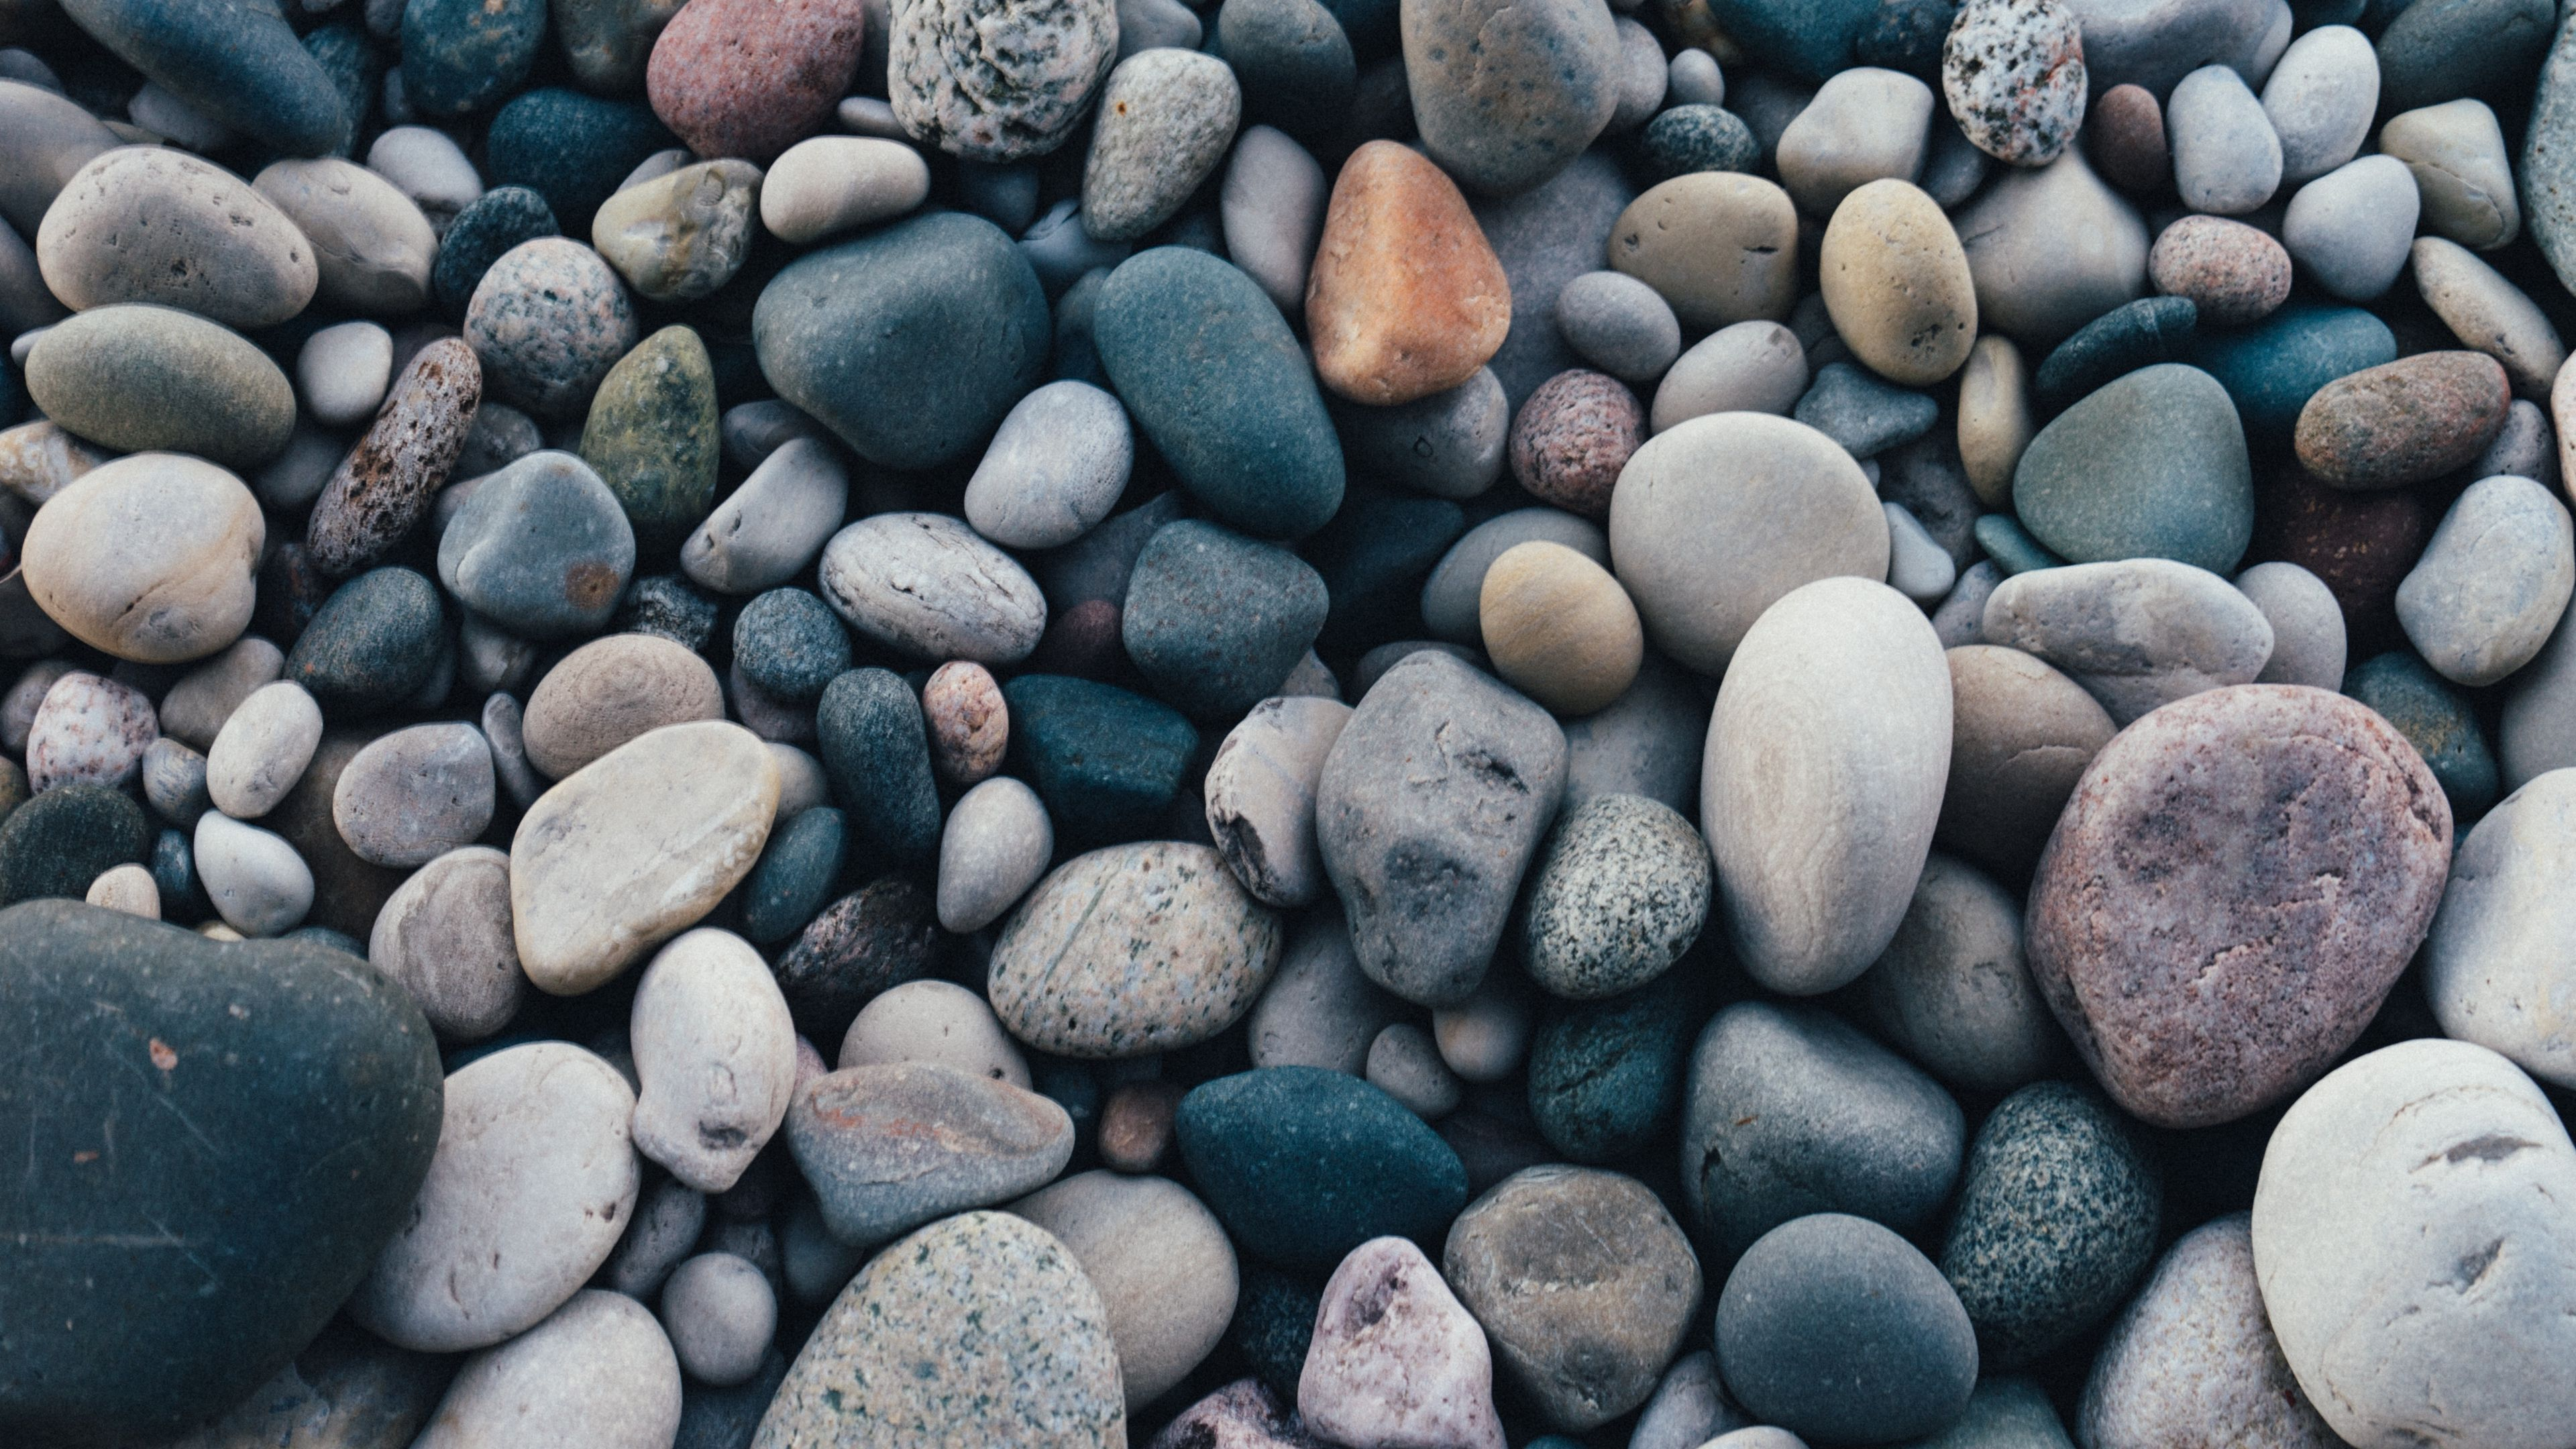 Download wallpaper 3840x2160 stones, sea, pebble 4k uhd 16:9 hd ...